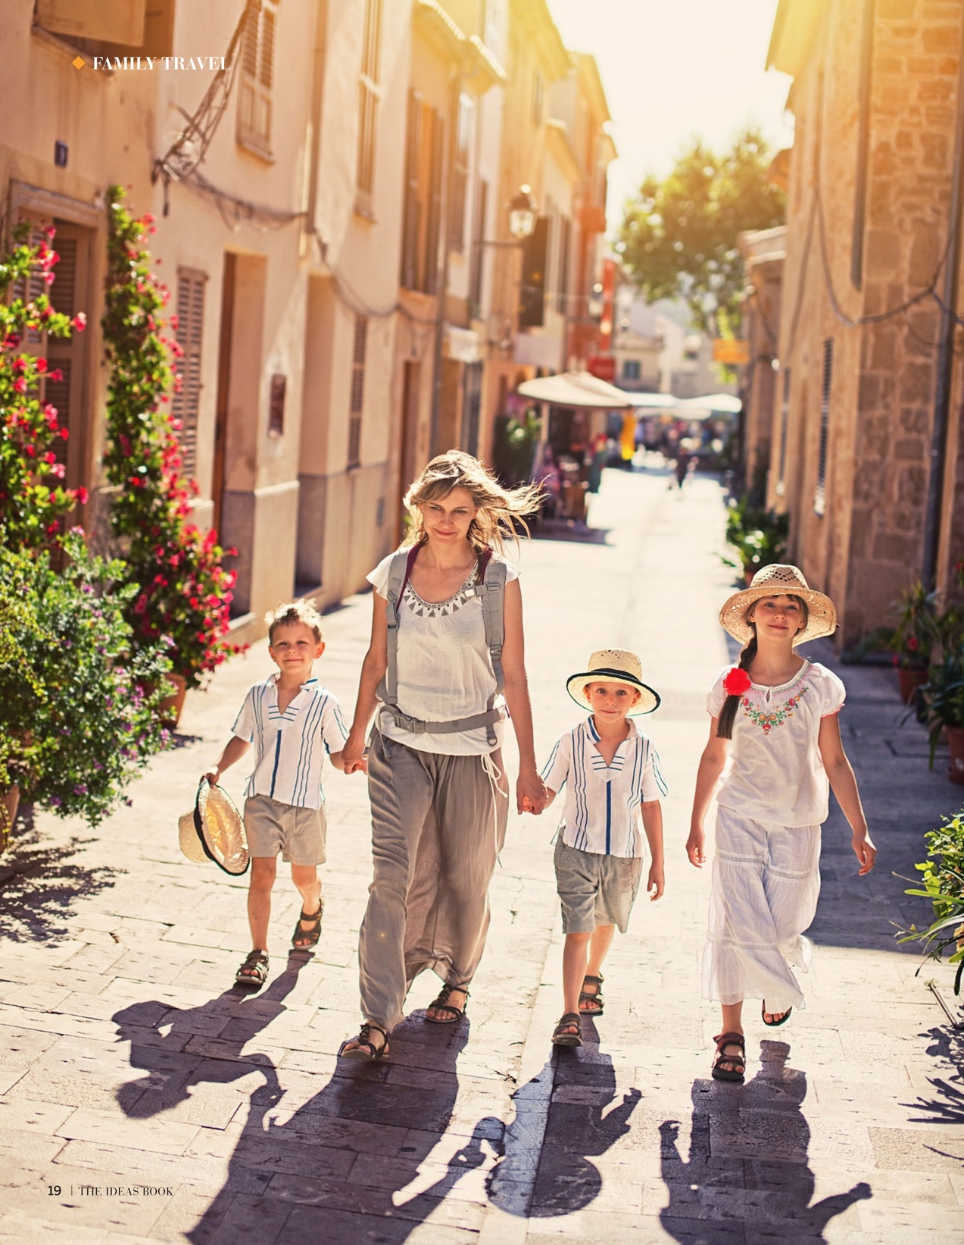 Family Travel Virtuoso Travel Ideas 2018 - 5.png